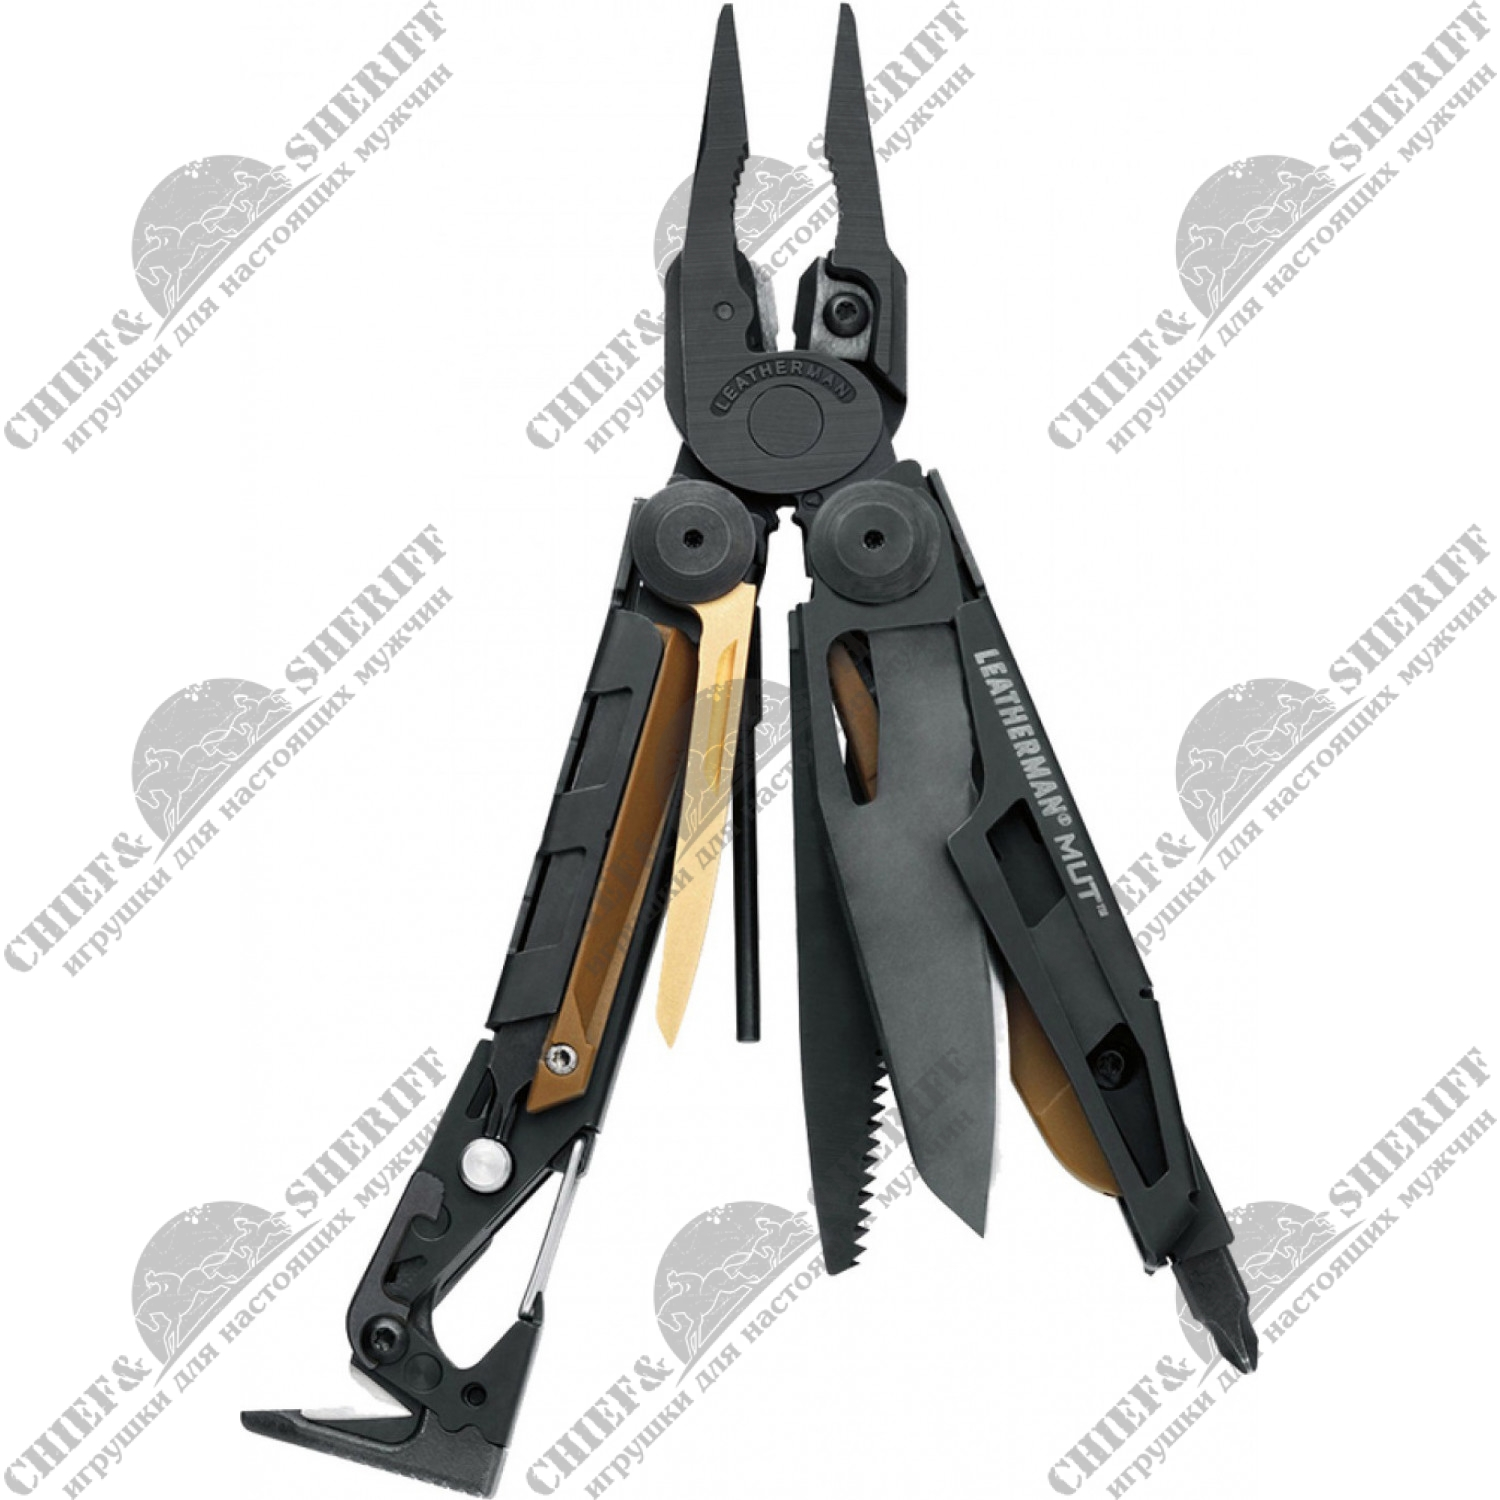 Мультитул Leatherman MUT, 127 мм, 16 функций, черный, 850122N